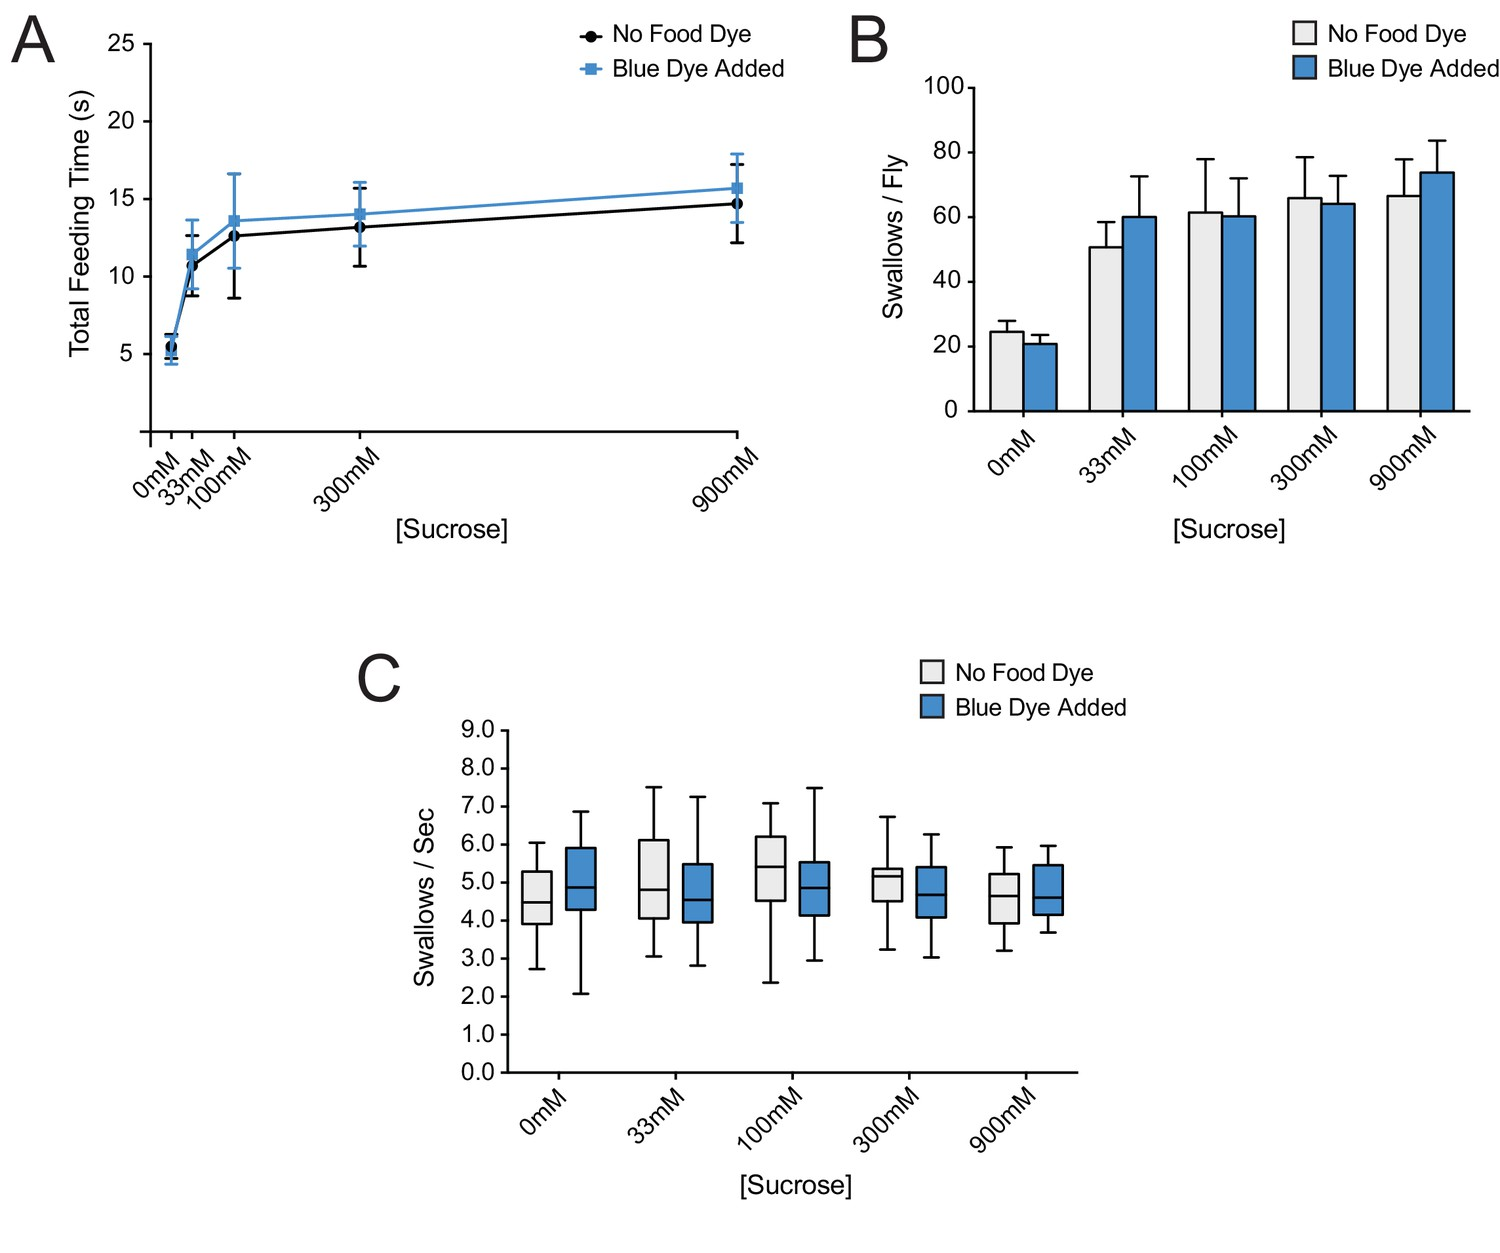 A Receptor And Neuron That Activate Circuit Limiting Sucrose Moreover Series Parallel Problems Likewise Electrical Addition Of Erioglaucine Blue Dye To Food Does Not Affect Feeding Behaviors